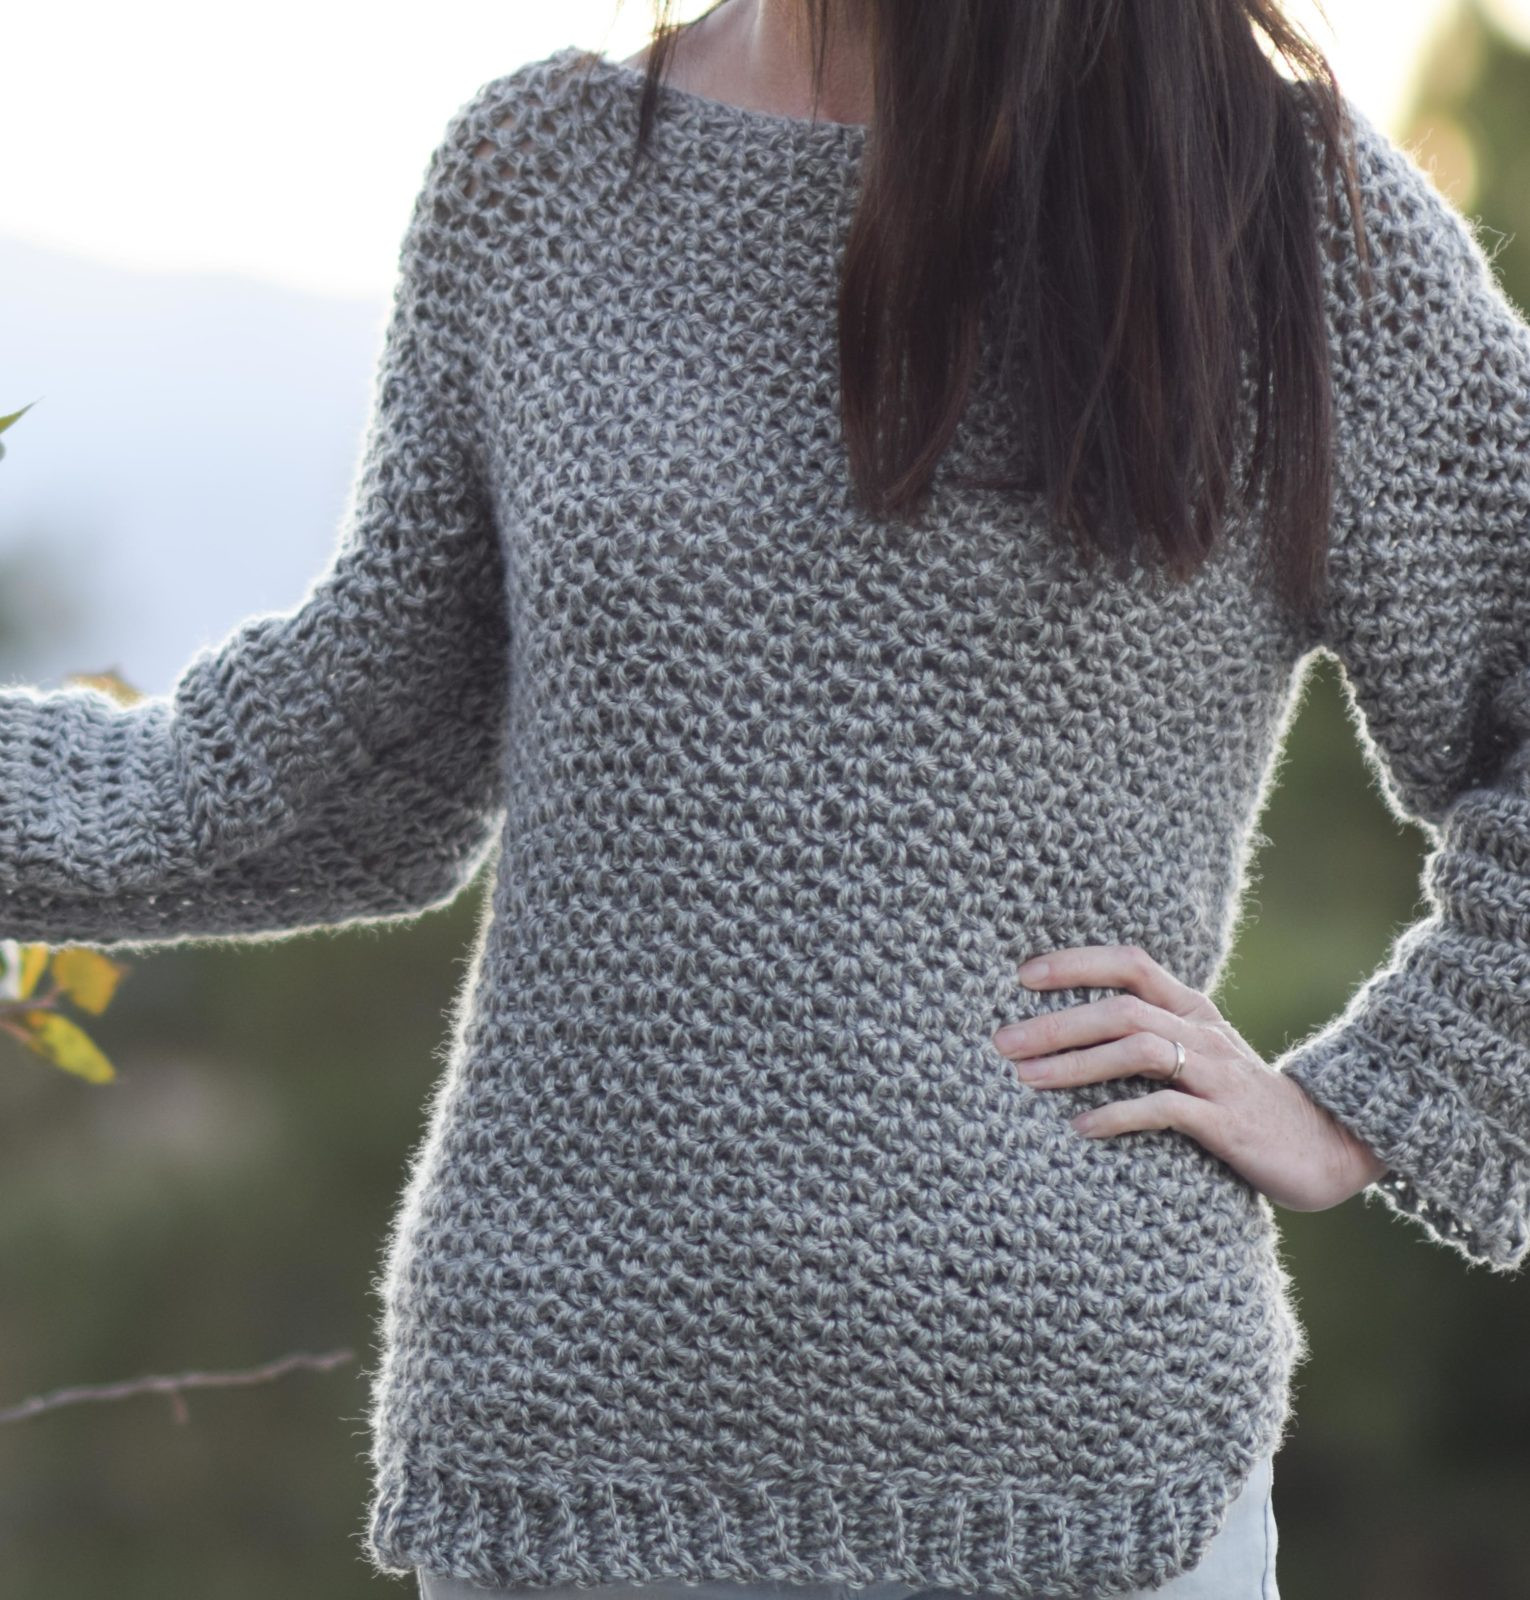 Awesome Free Crochet Patterns that Look Knit Sewrella Free Knitting and Crochet Patterns Of Marvelous 44 Ideas Free Knitting and Crochet Patterns